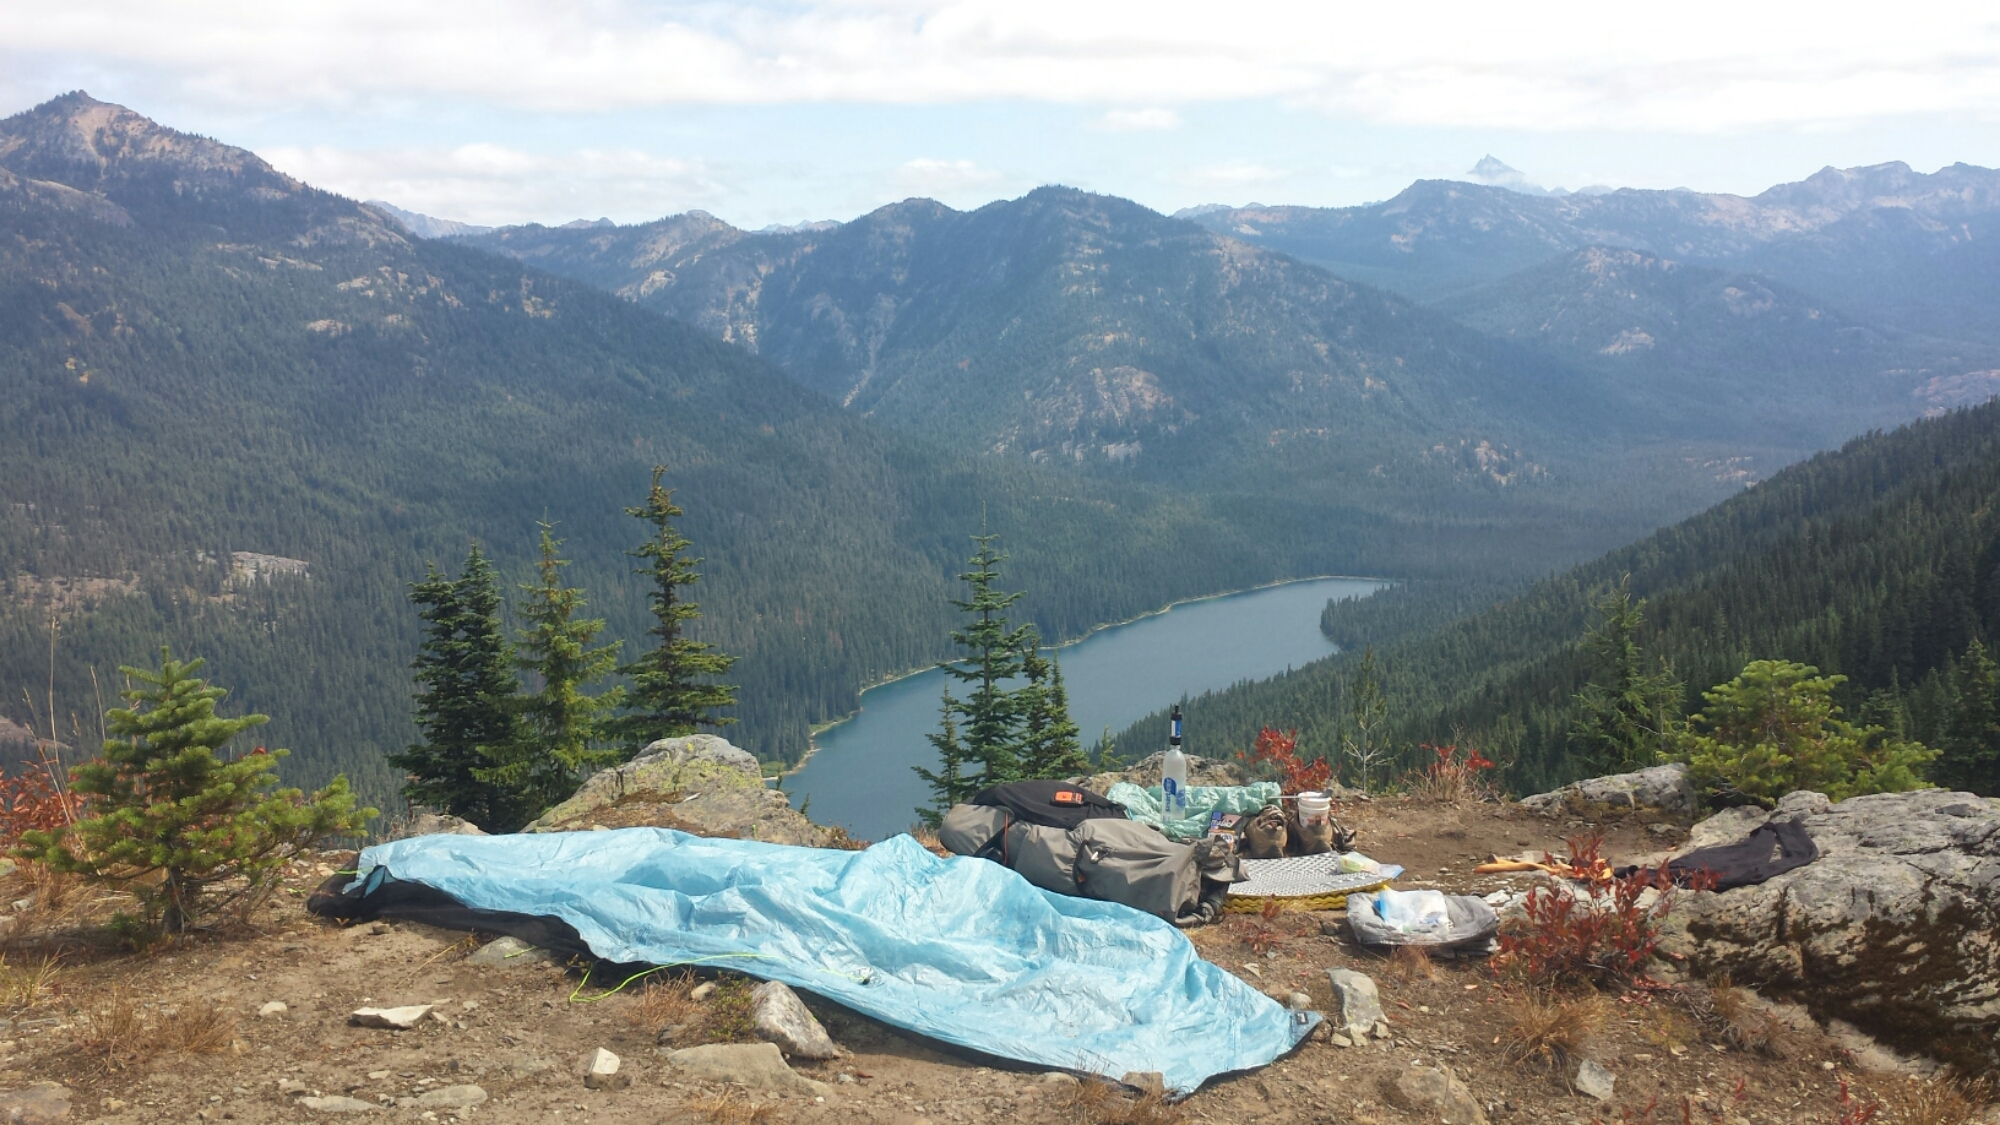 Drying out my gear above Waptus Lake